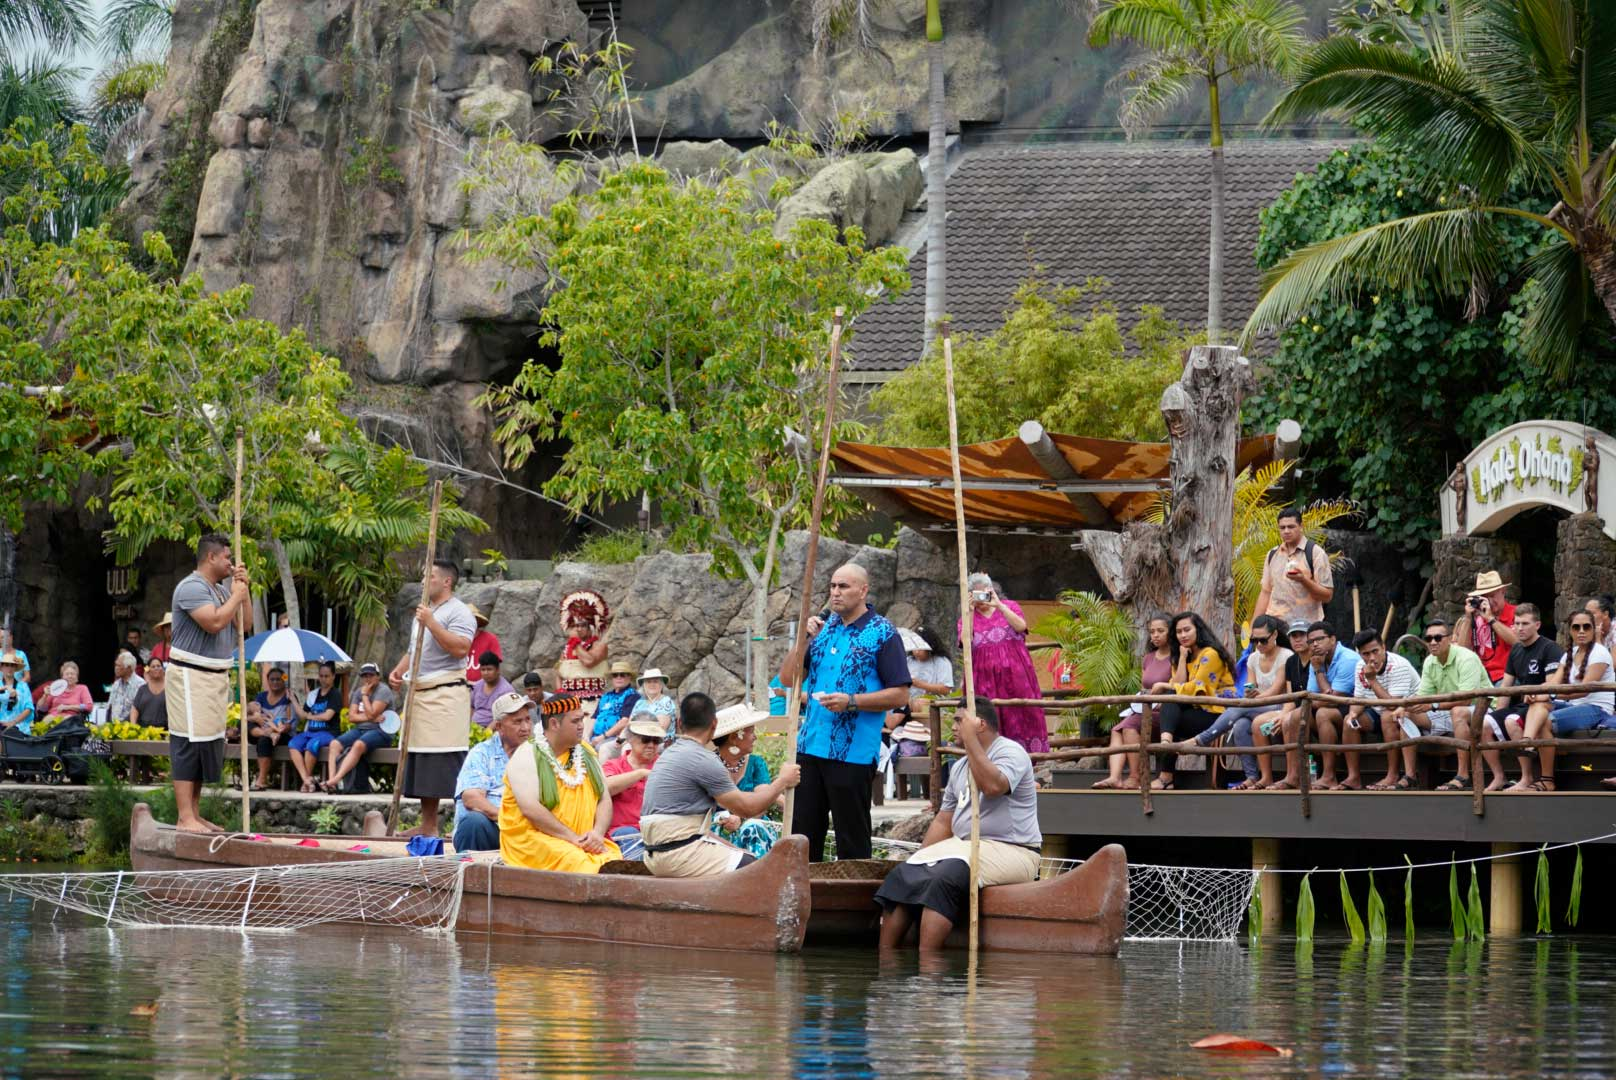 Polynesian Cultural Center President & CEO Alfred Grace welcomes crowd for the world premiere of Huki, as he is pulled into the freshwater lagoon on a canoe via fishing net.